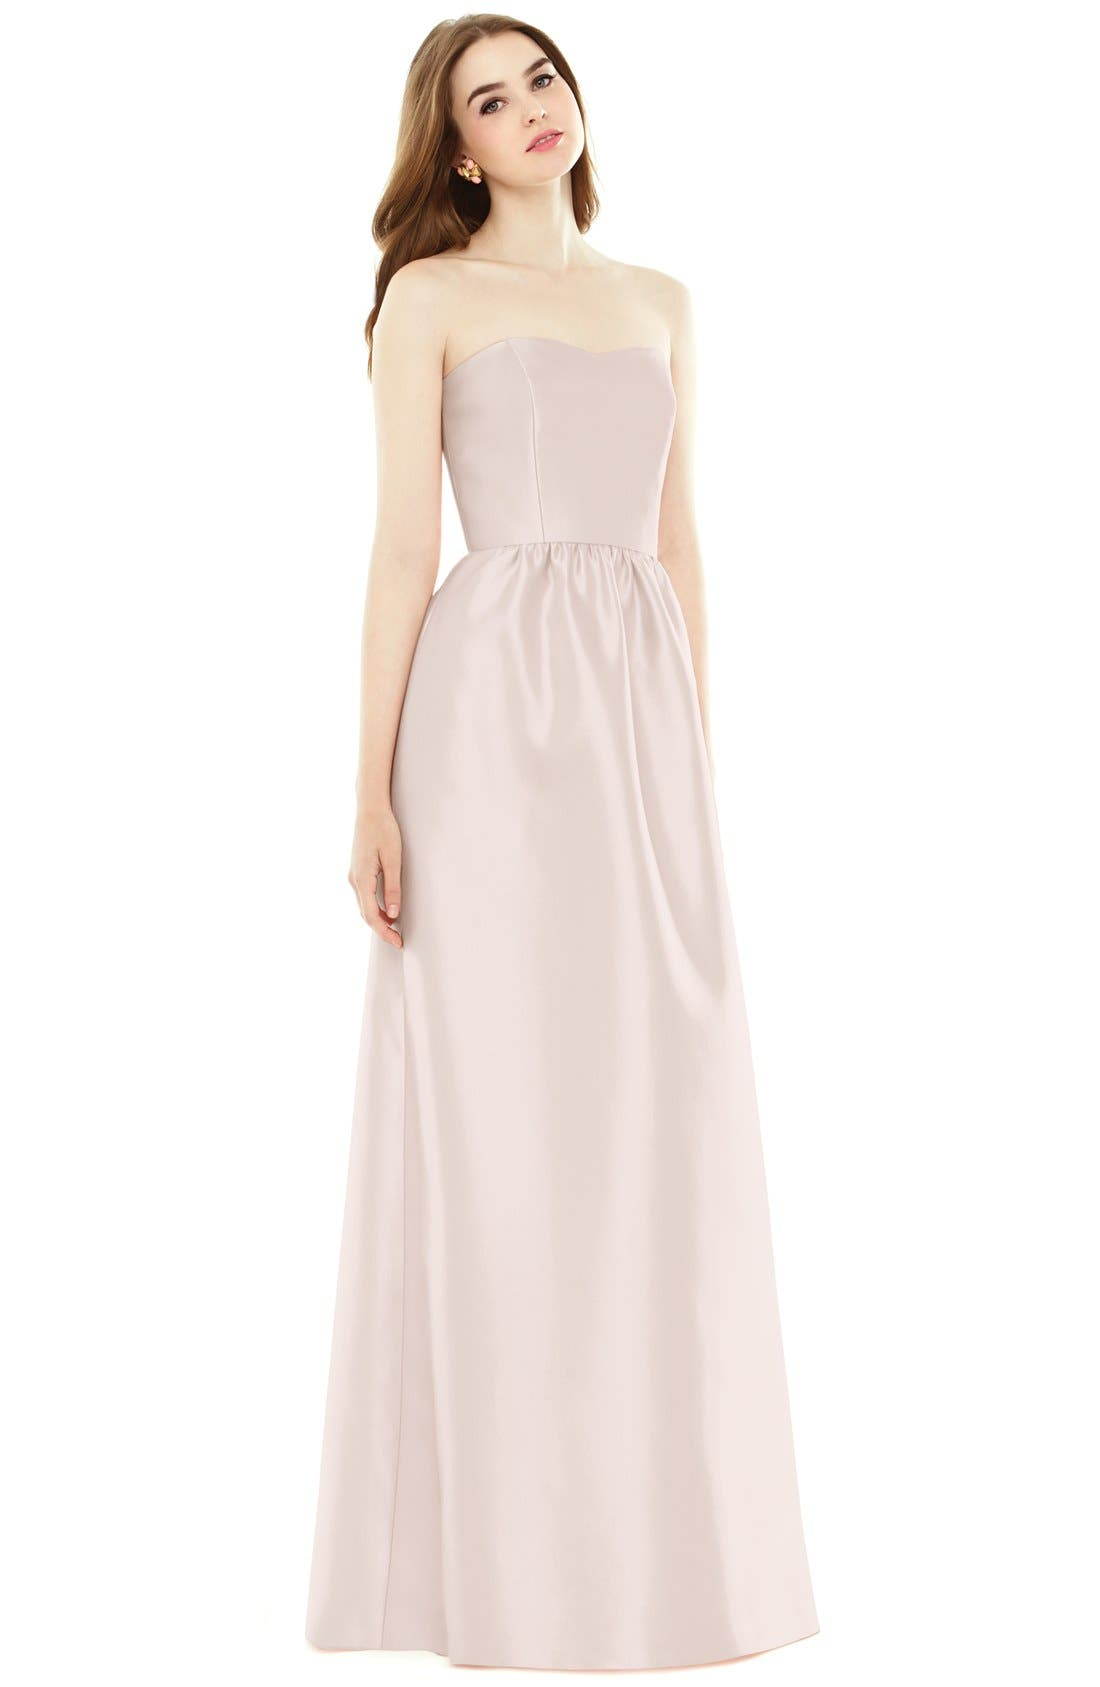 Alternate Image 1 Selected - Alfred Sung Strapless Sateen A-Line Gown